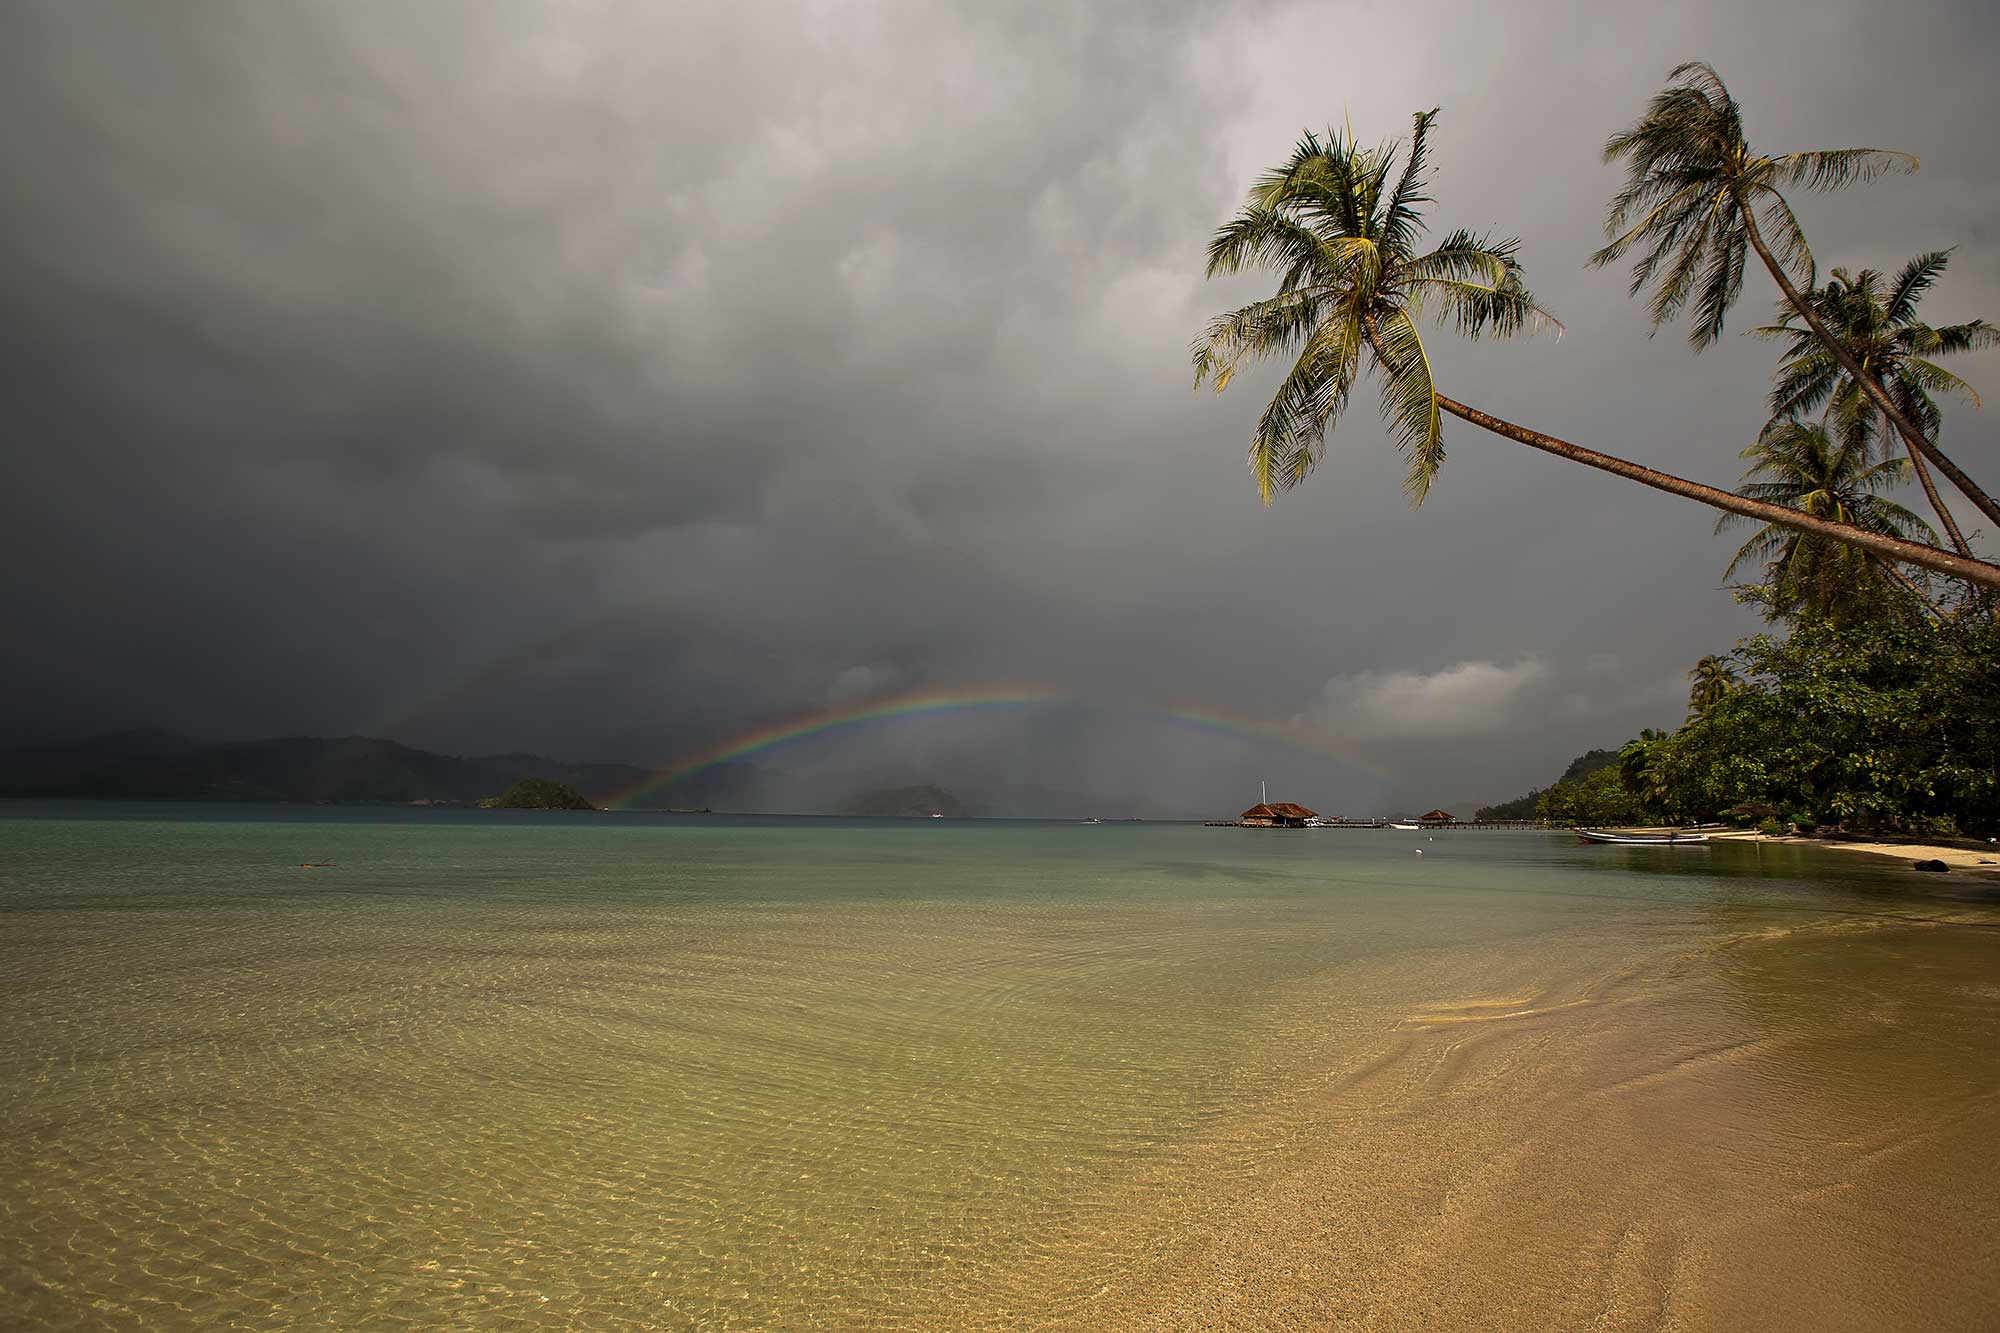 Another rainbow on Cubadak island in West Sumatra, Indonesia. © Ulli Maier & Nisa Maier